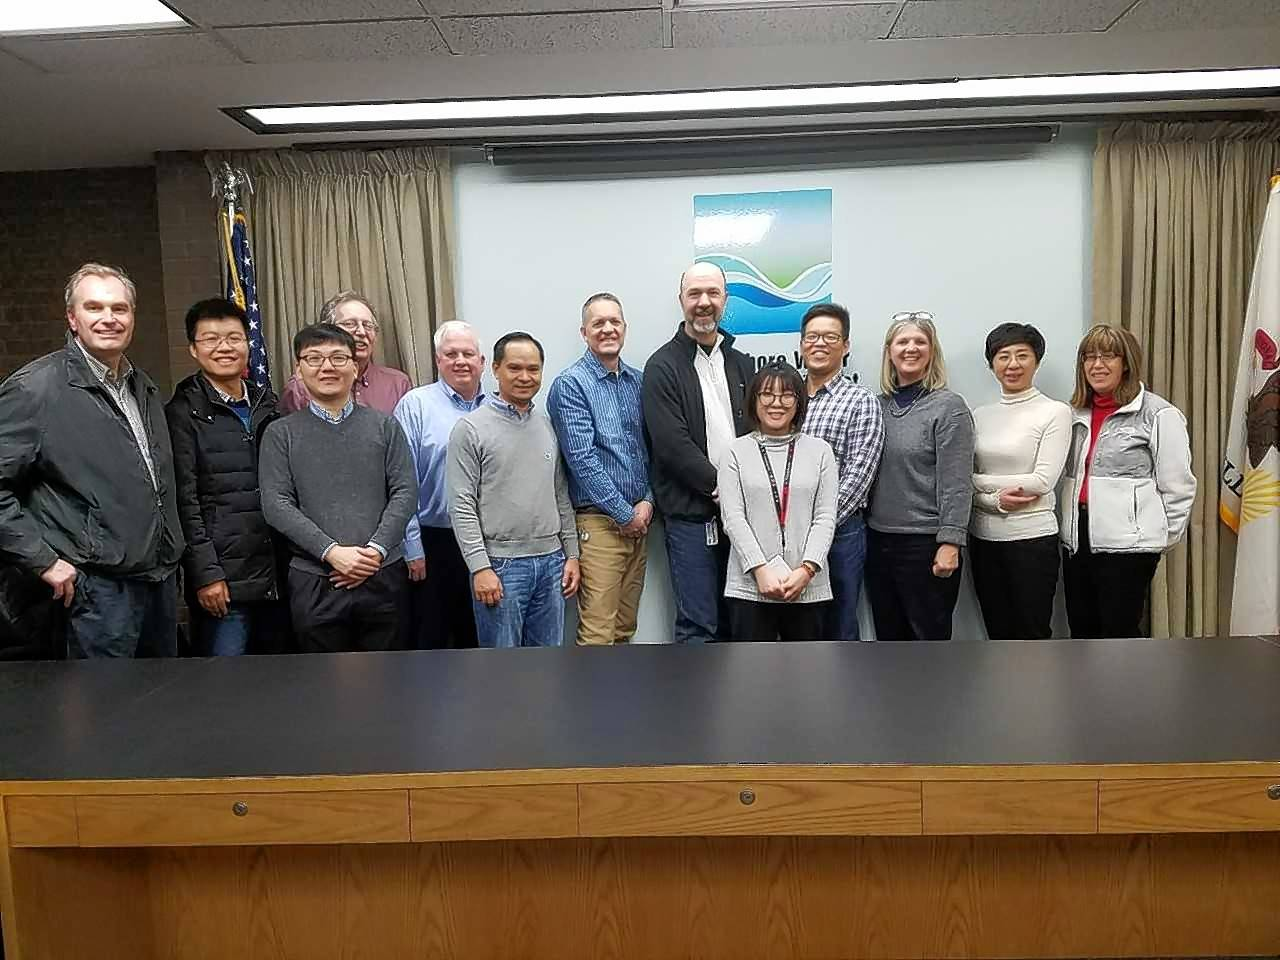 The Northshore Water Reclamation District in Gurnee hosted a group of Chinese engineers and managers from the Engineering Corporation of Water Environmental and Urban Infrastructure, a subsidiary of Chengdu Engineering Corporation.